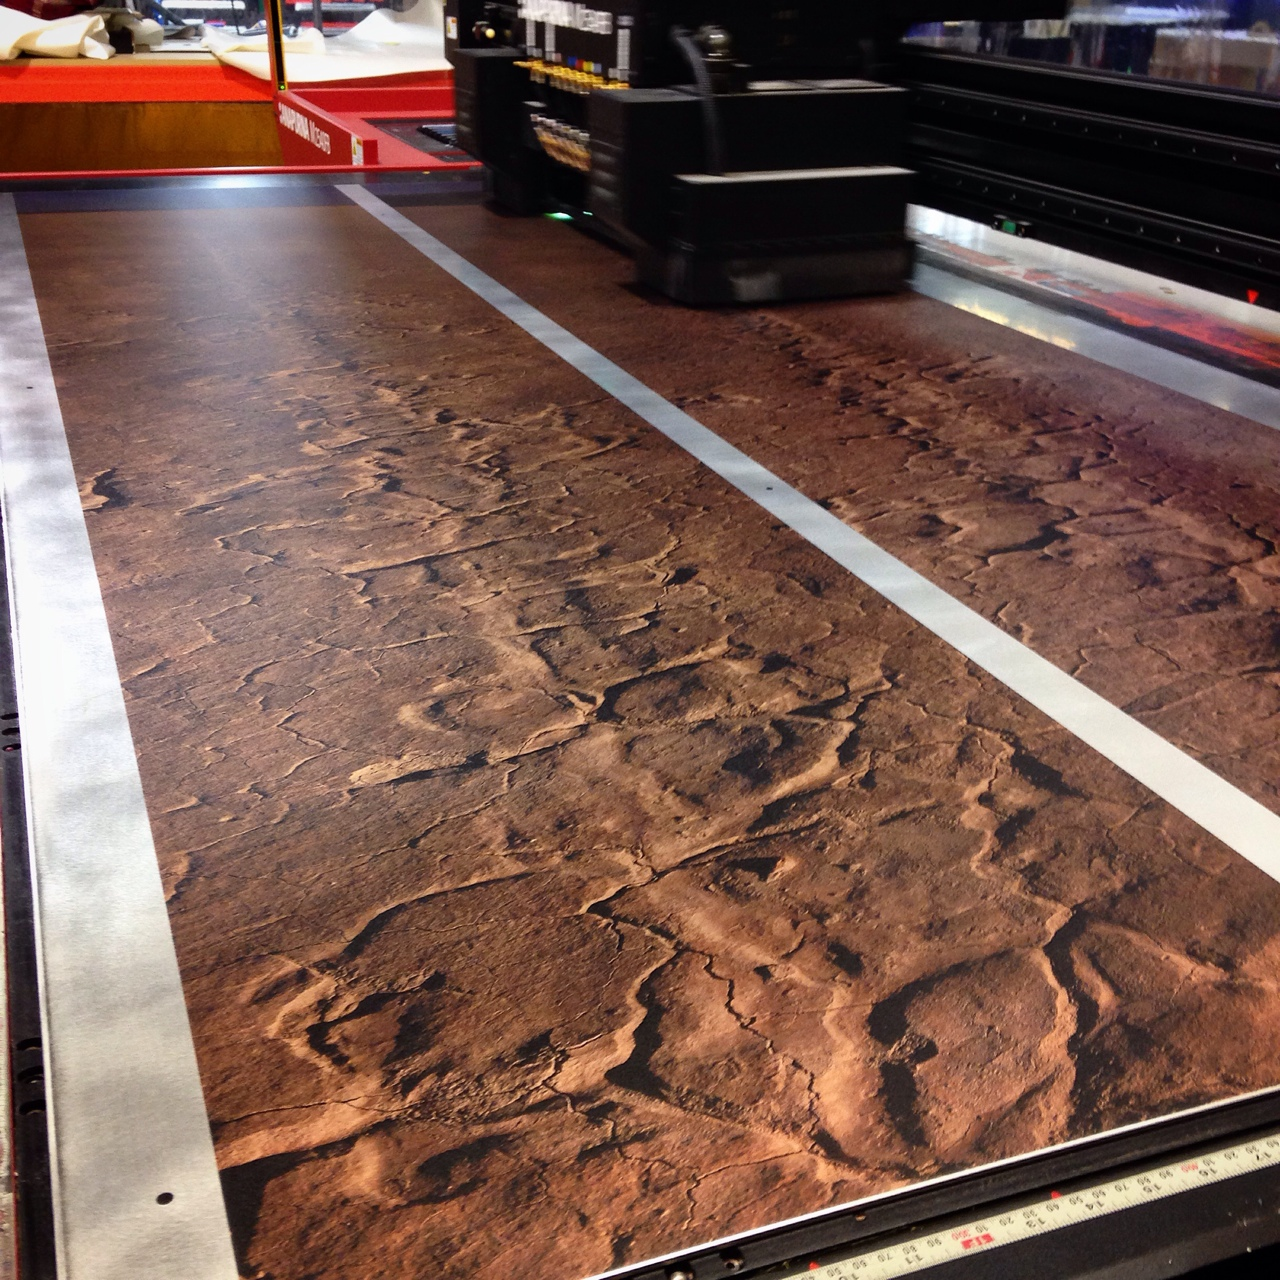 Printing photos of tracks in the desert.